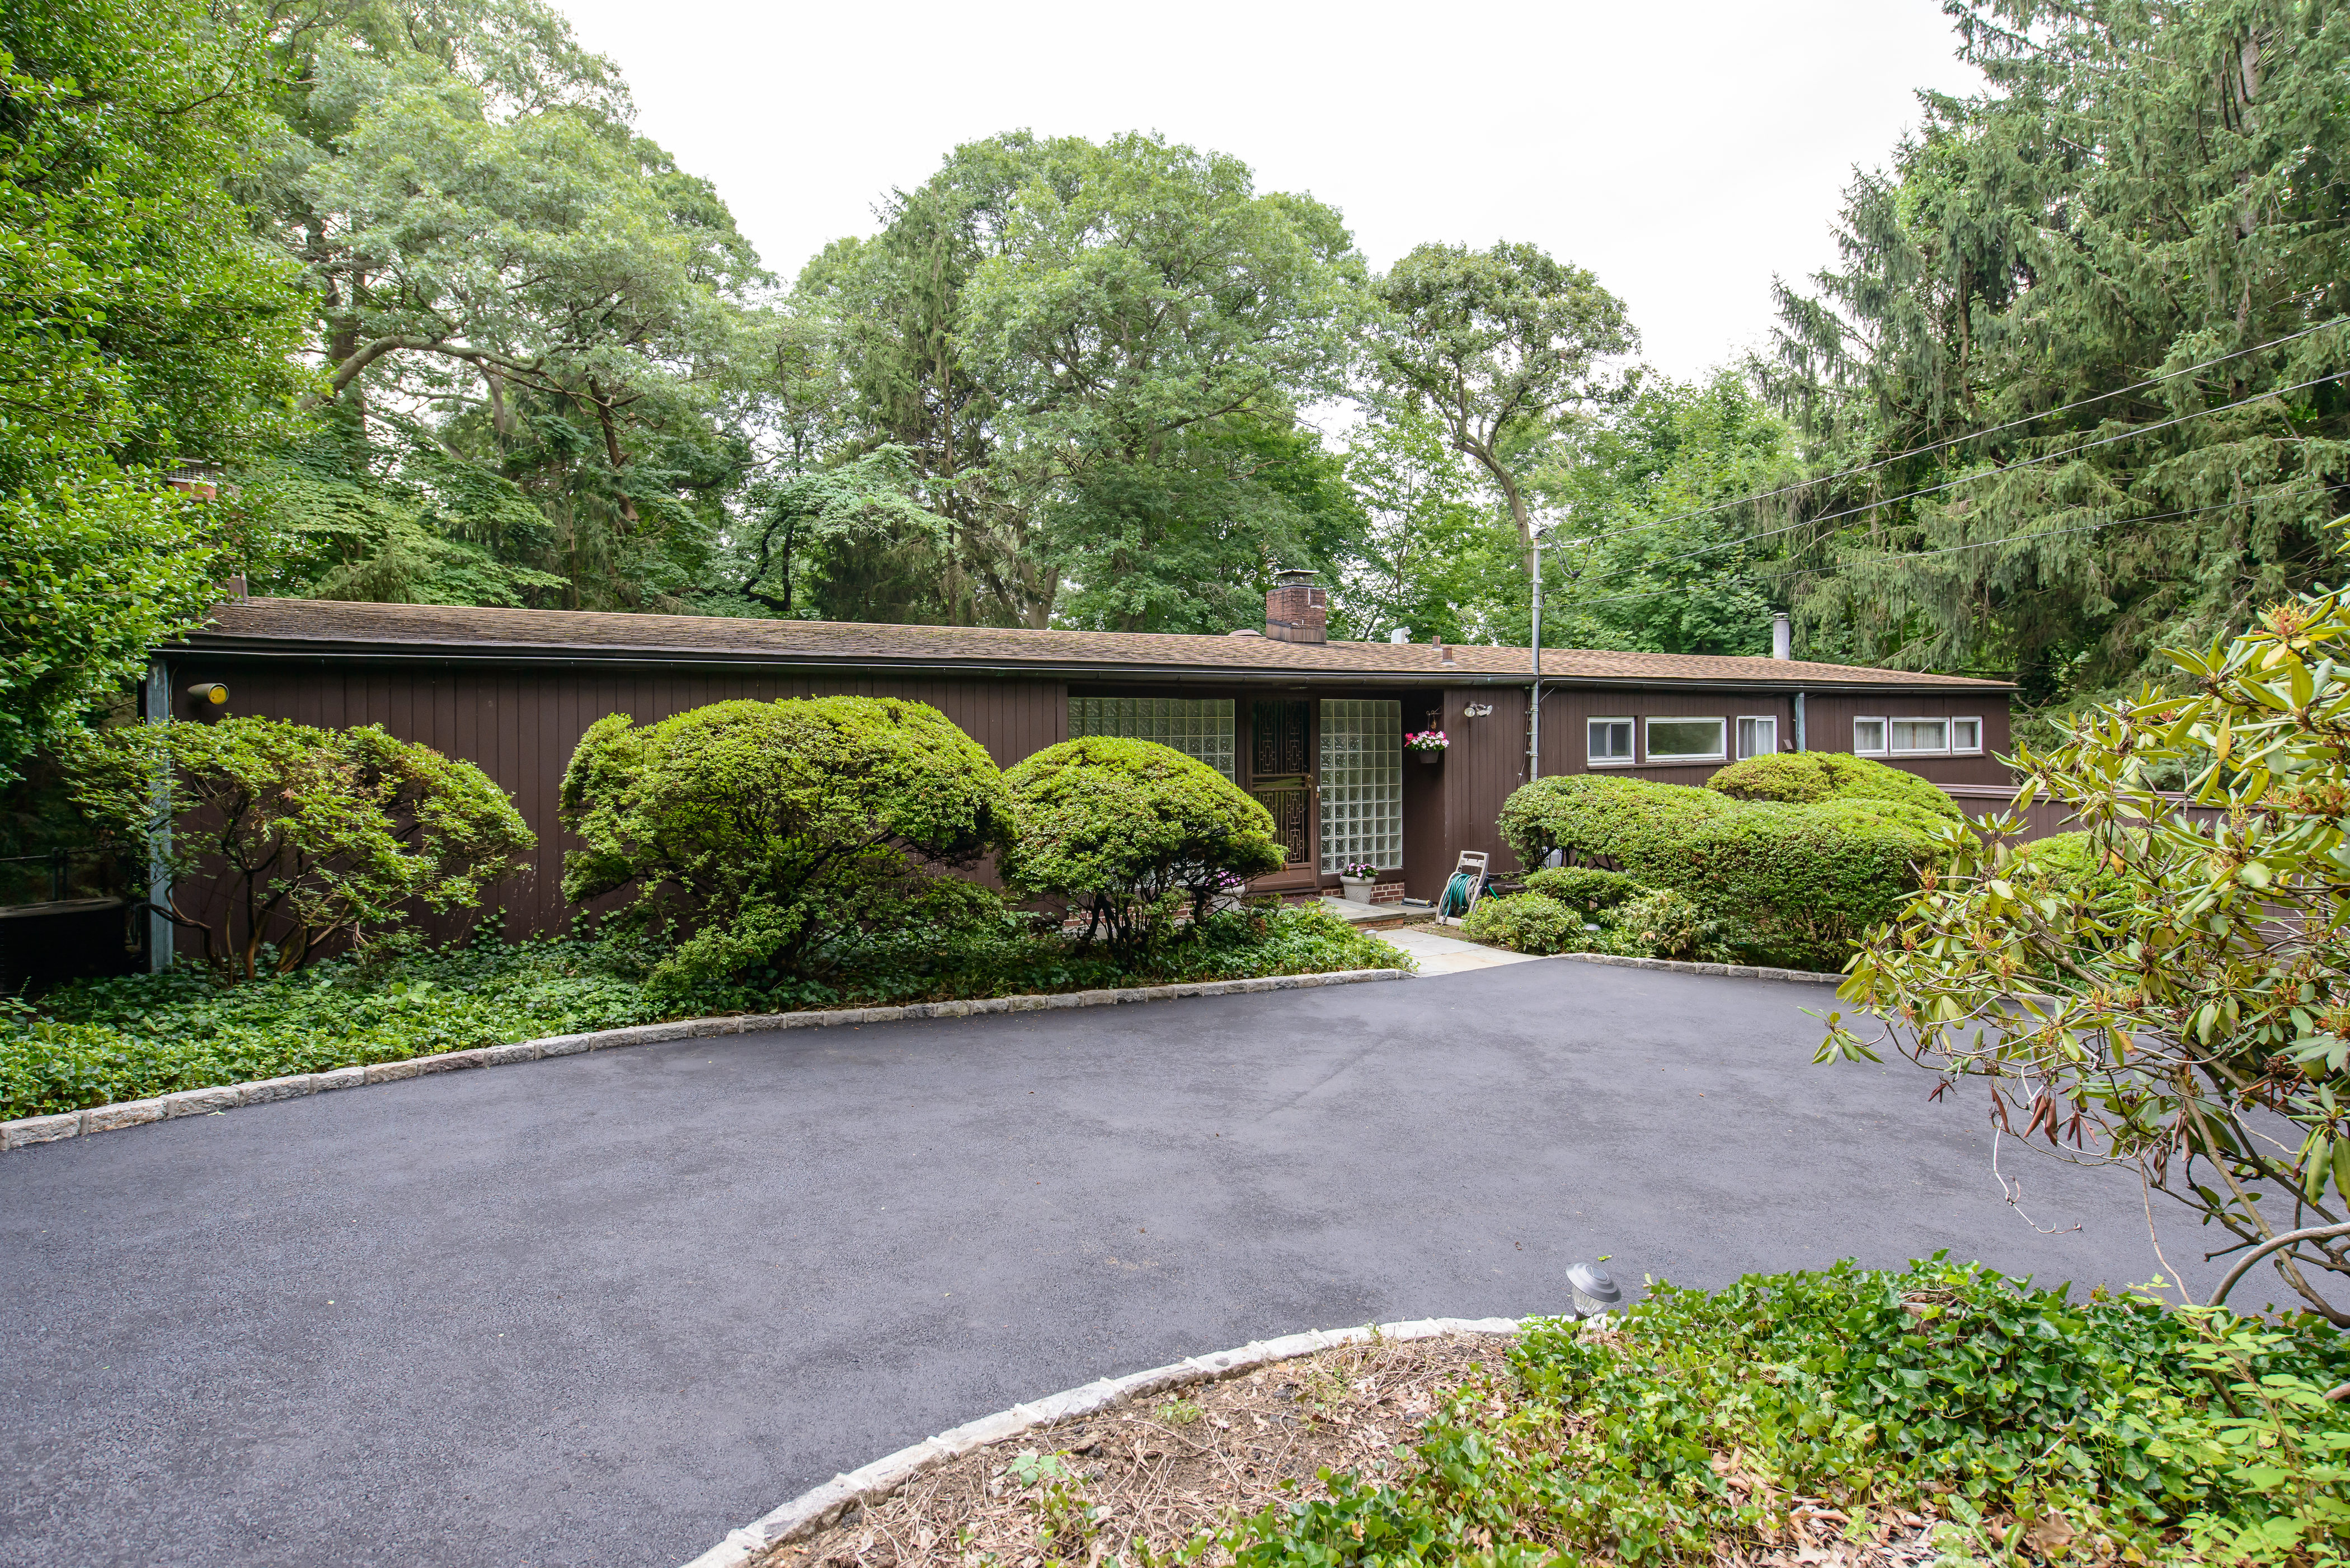 Single Family Home for Sale at Post Modern 20 Pine Rd Syosset, New York, 11791 United States